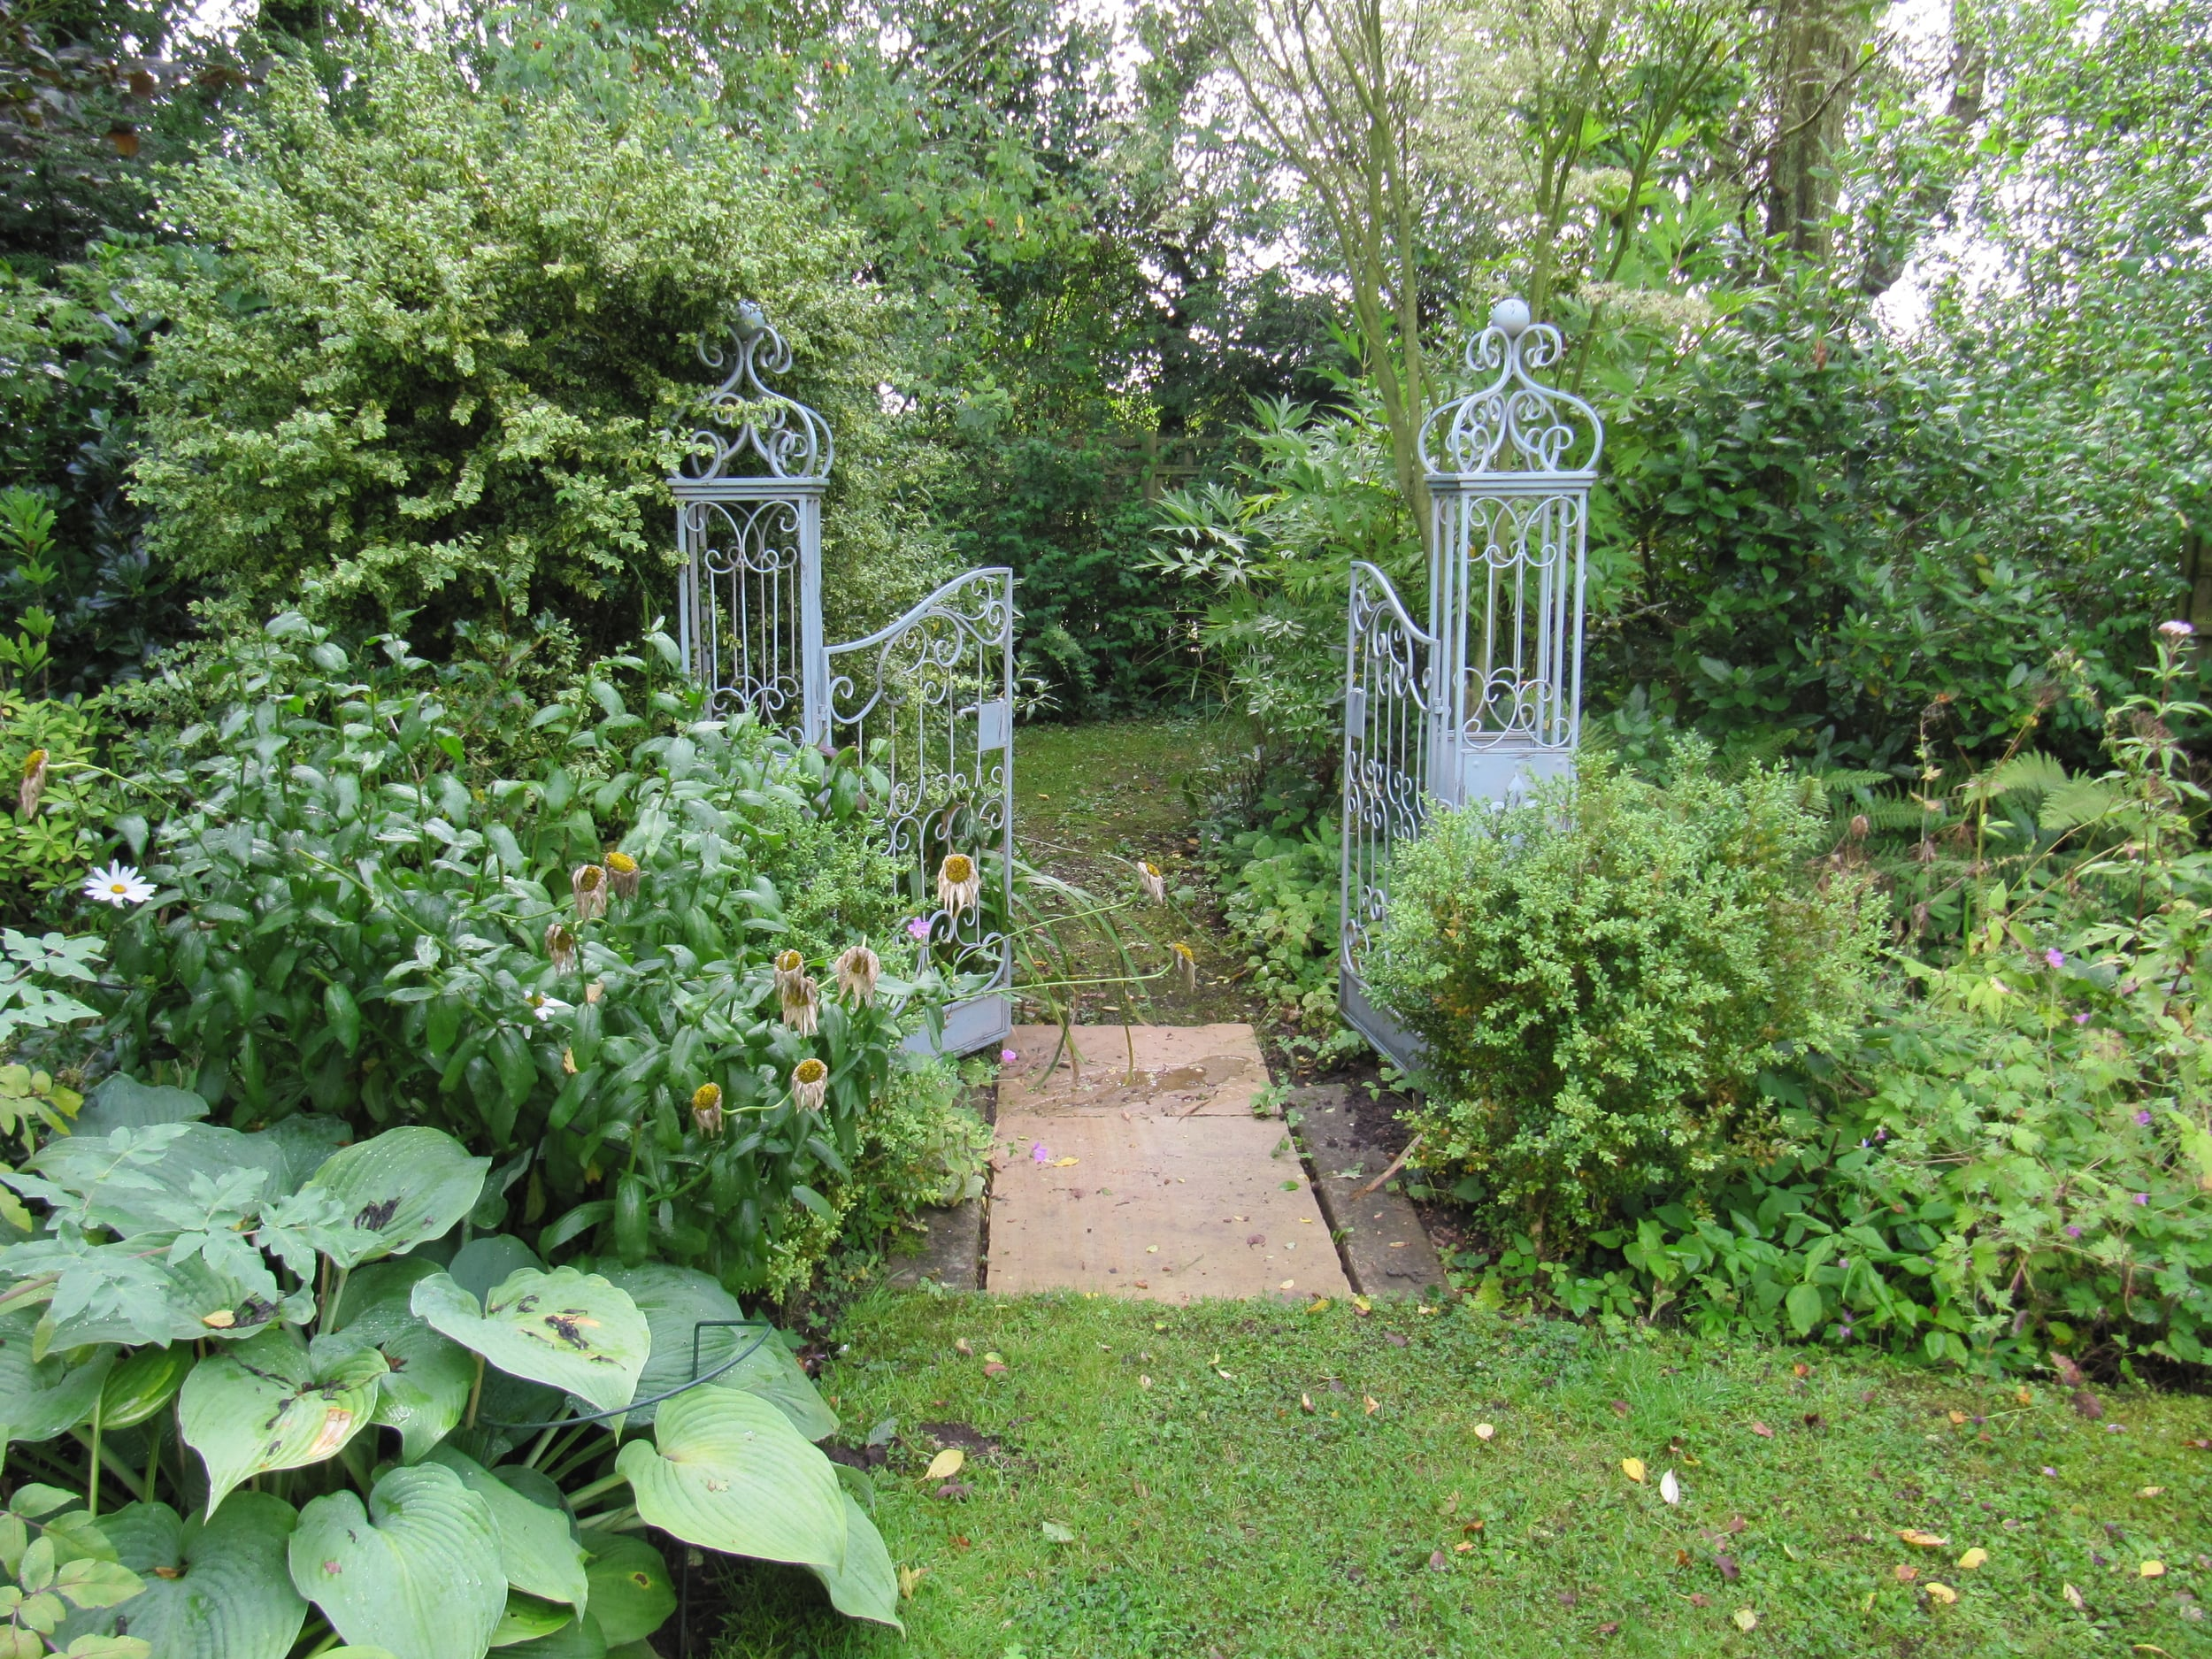 Painted wrought iron gates form a quirky entrance inviting further exploration of this Herefordshire garden.